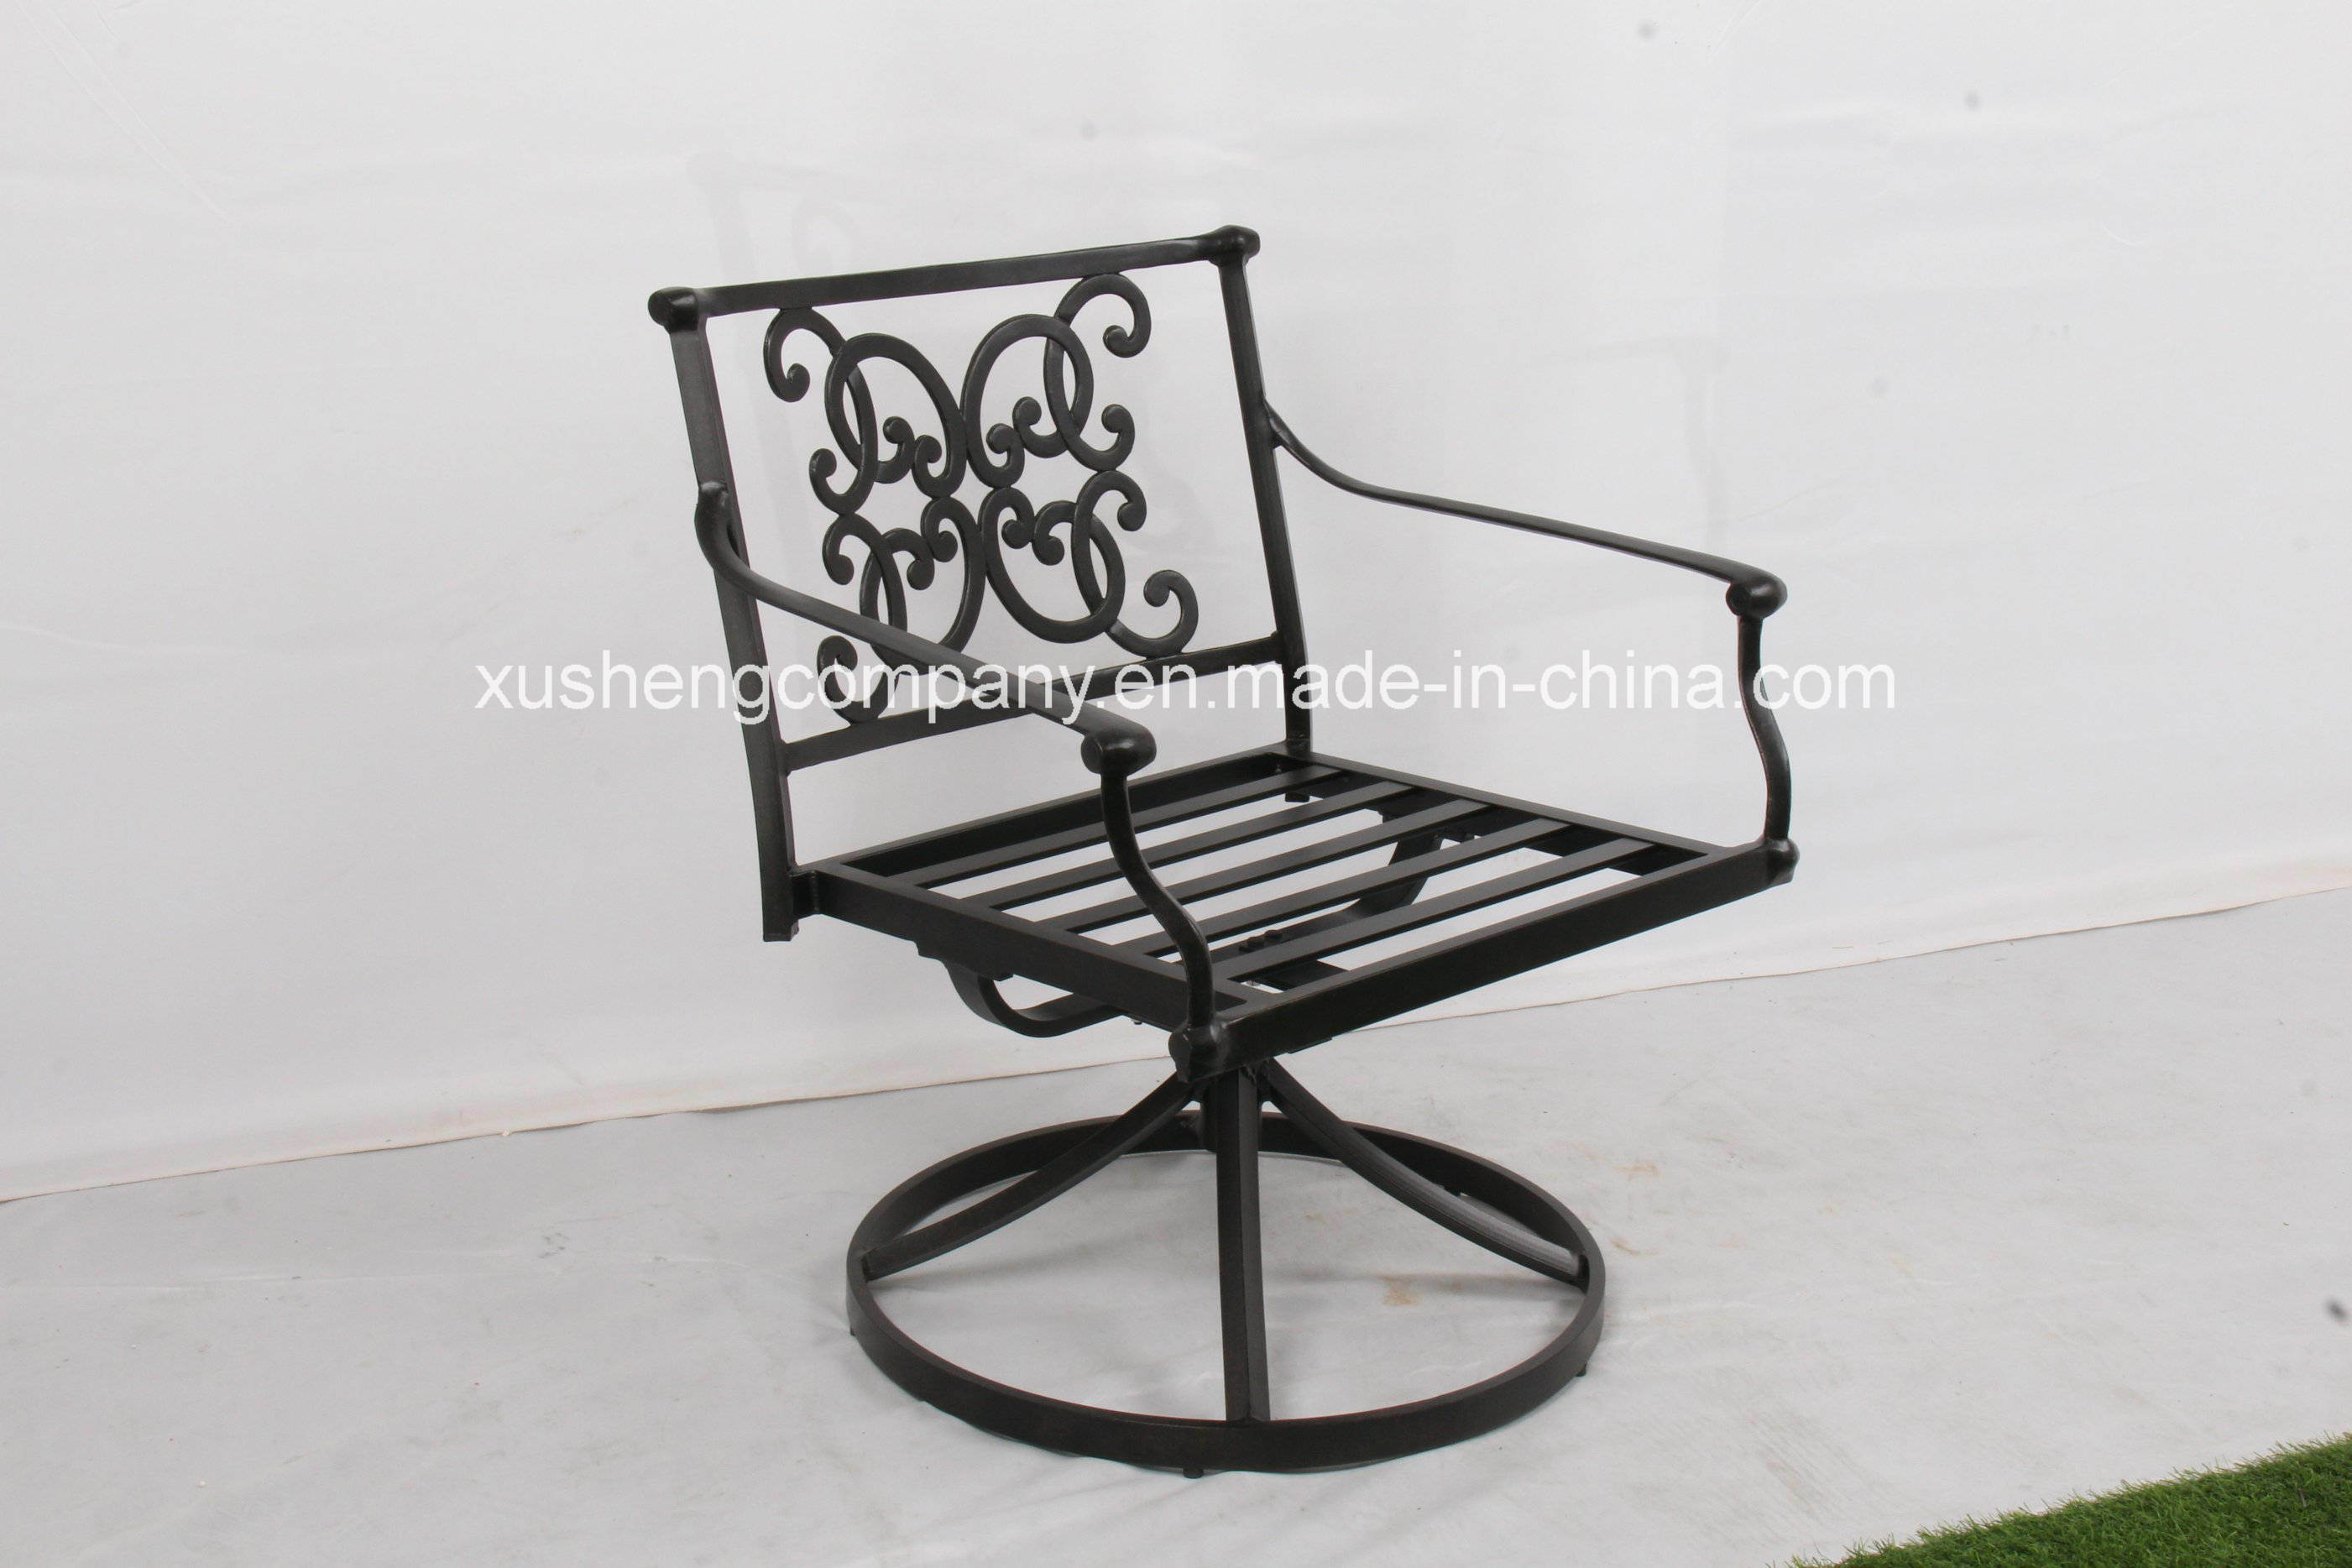 China Luxtury Outdoor High Quality Cast Aluminum Patio Furniture Azusa Swivel Rocker Aluminium Set Clical